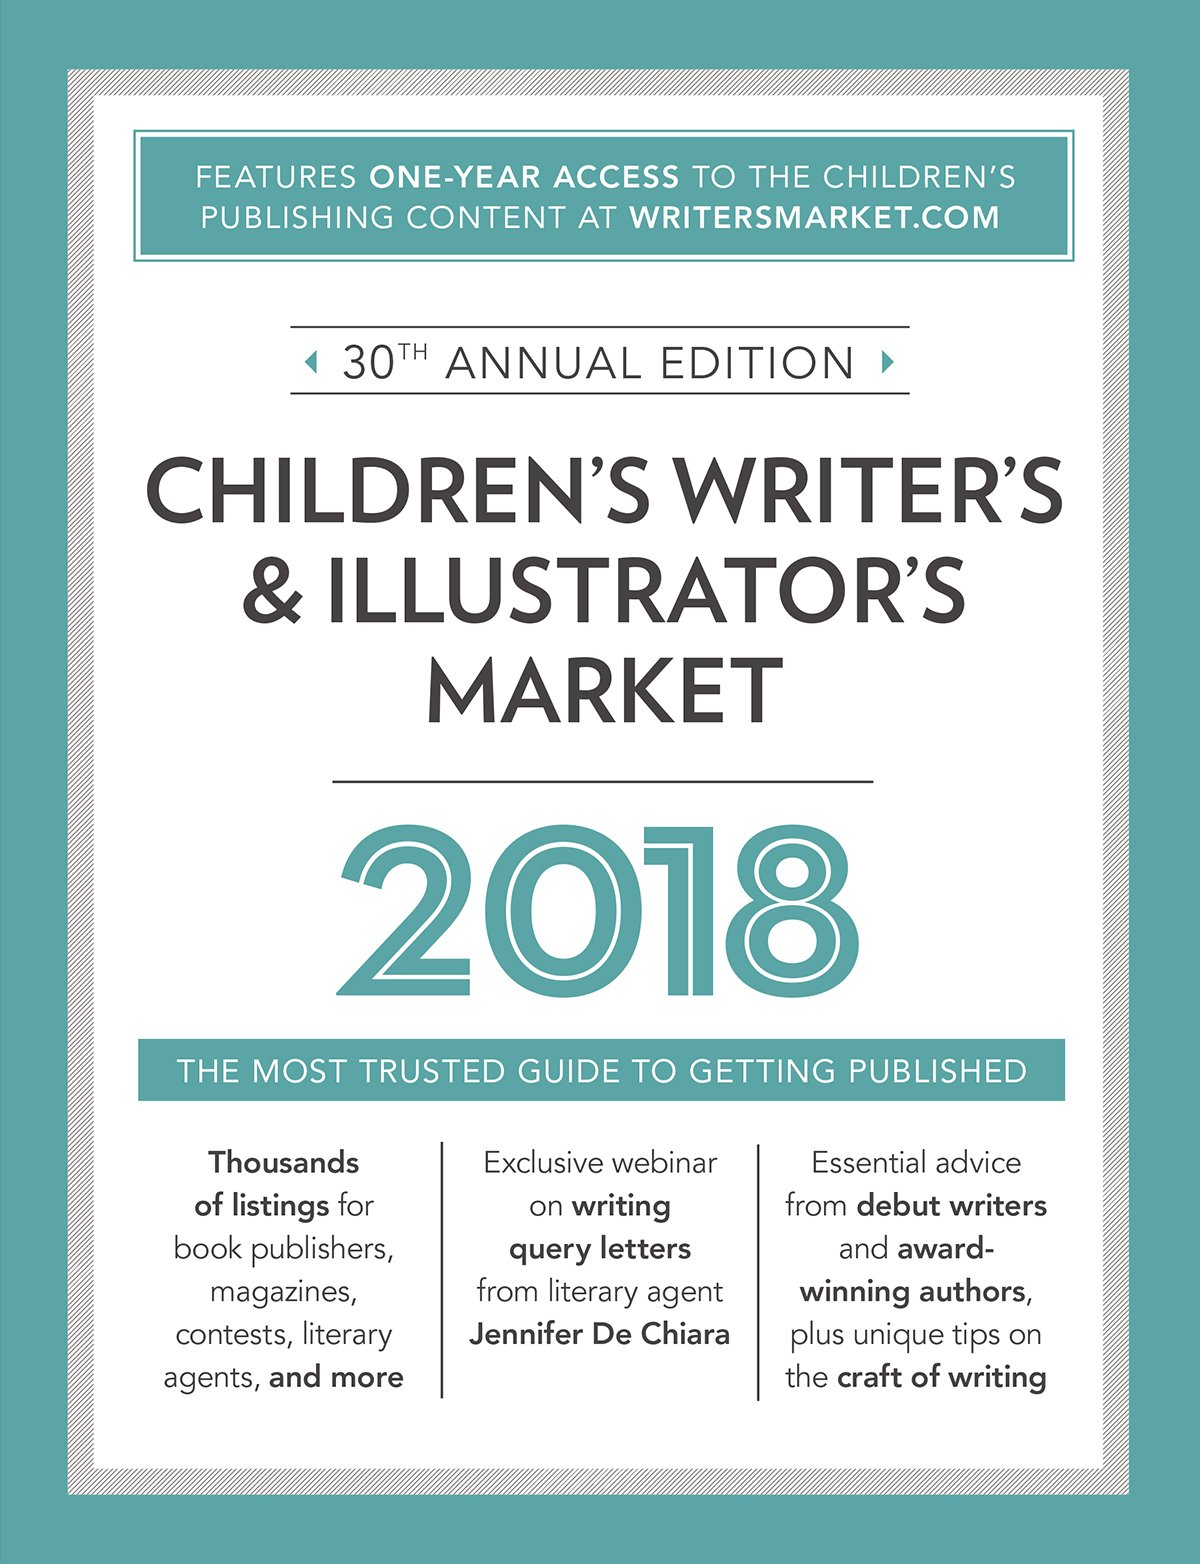 Children's Writer's & Illustrator's Market 2018: The Most Trusted Guide to Getting Published by Writer's Digest Books